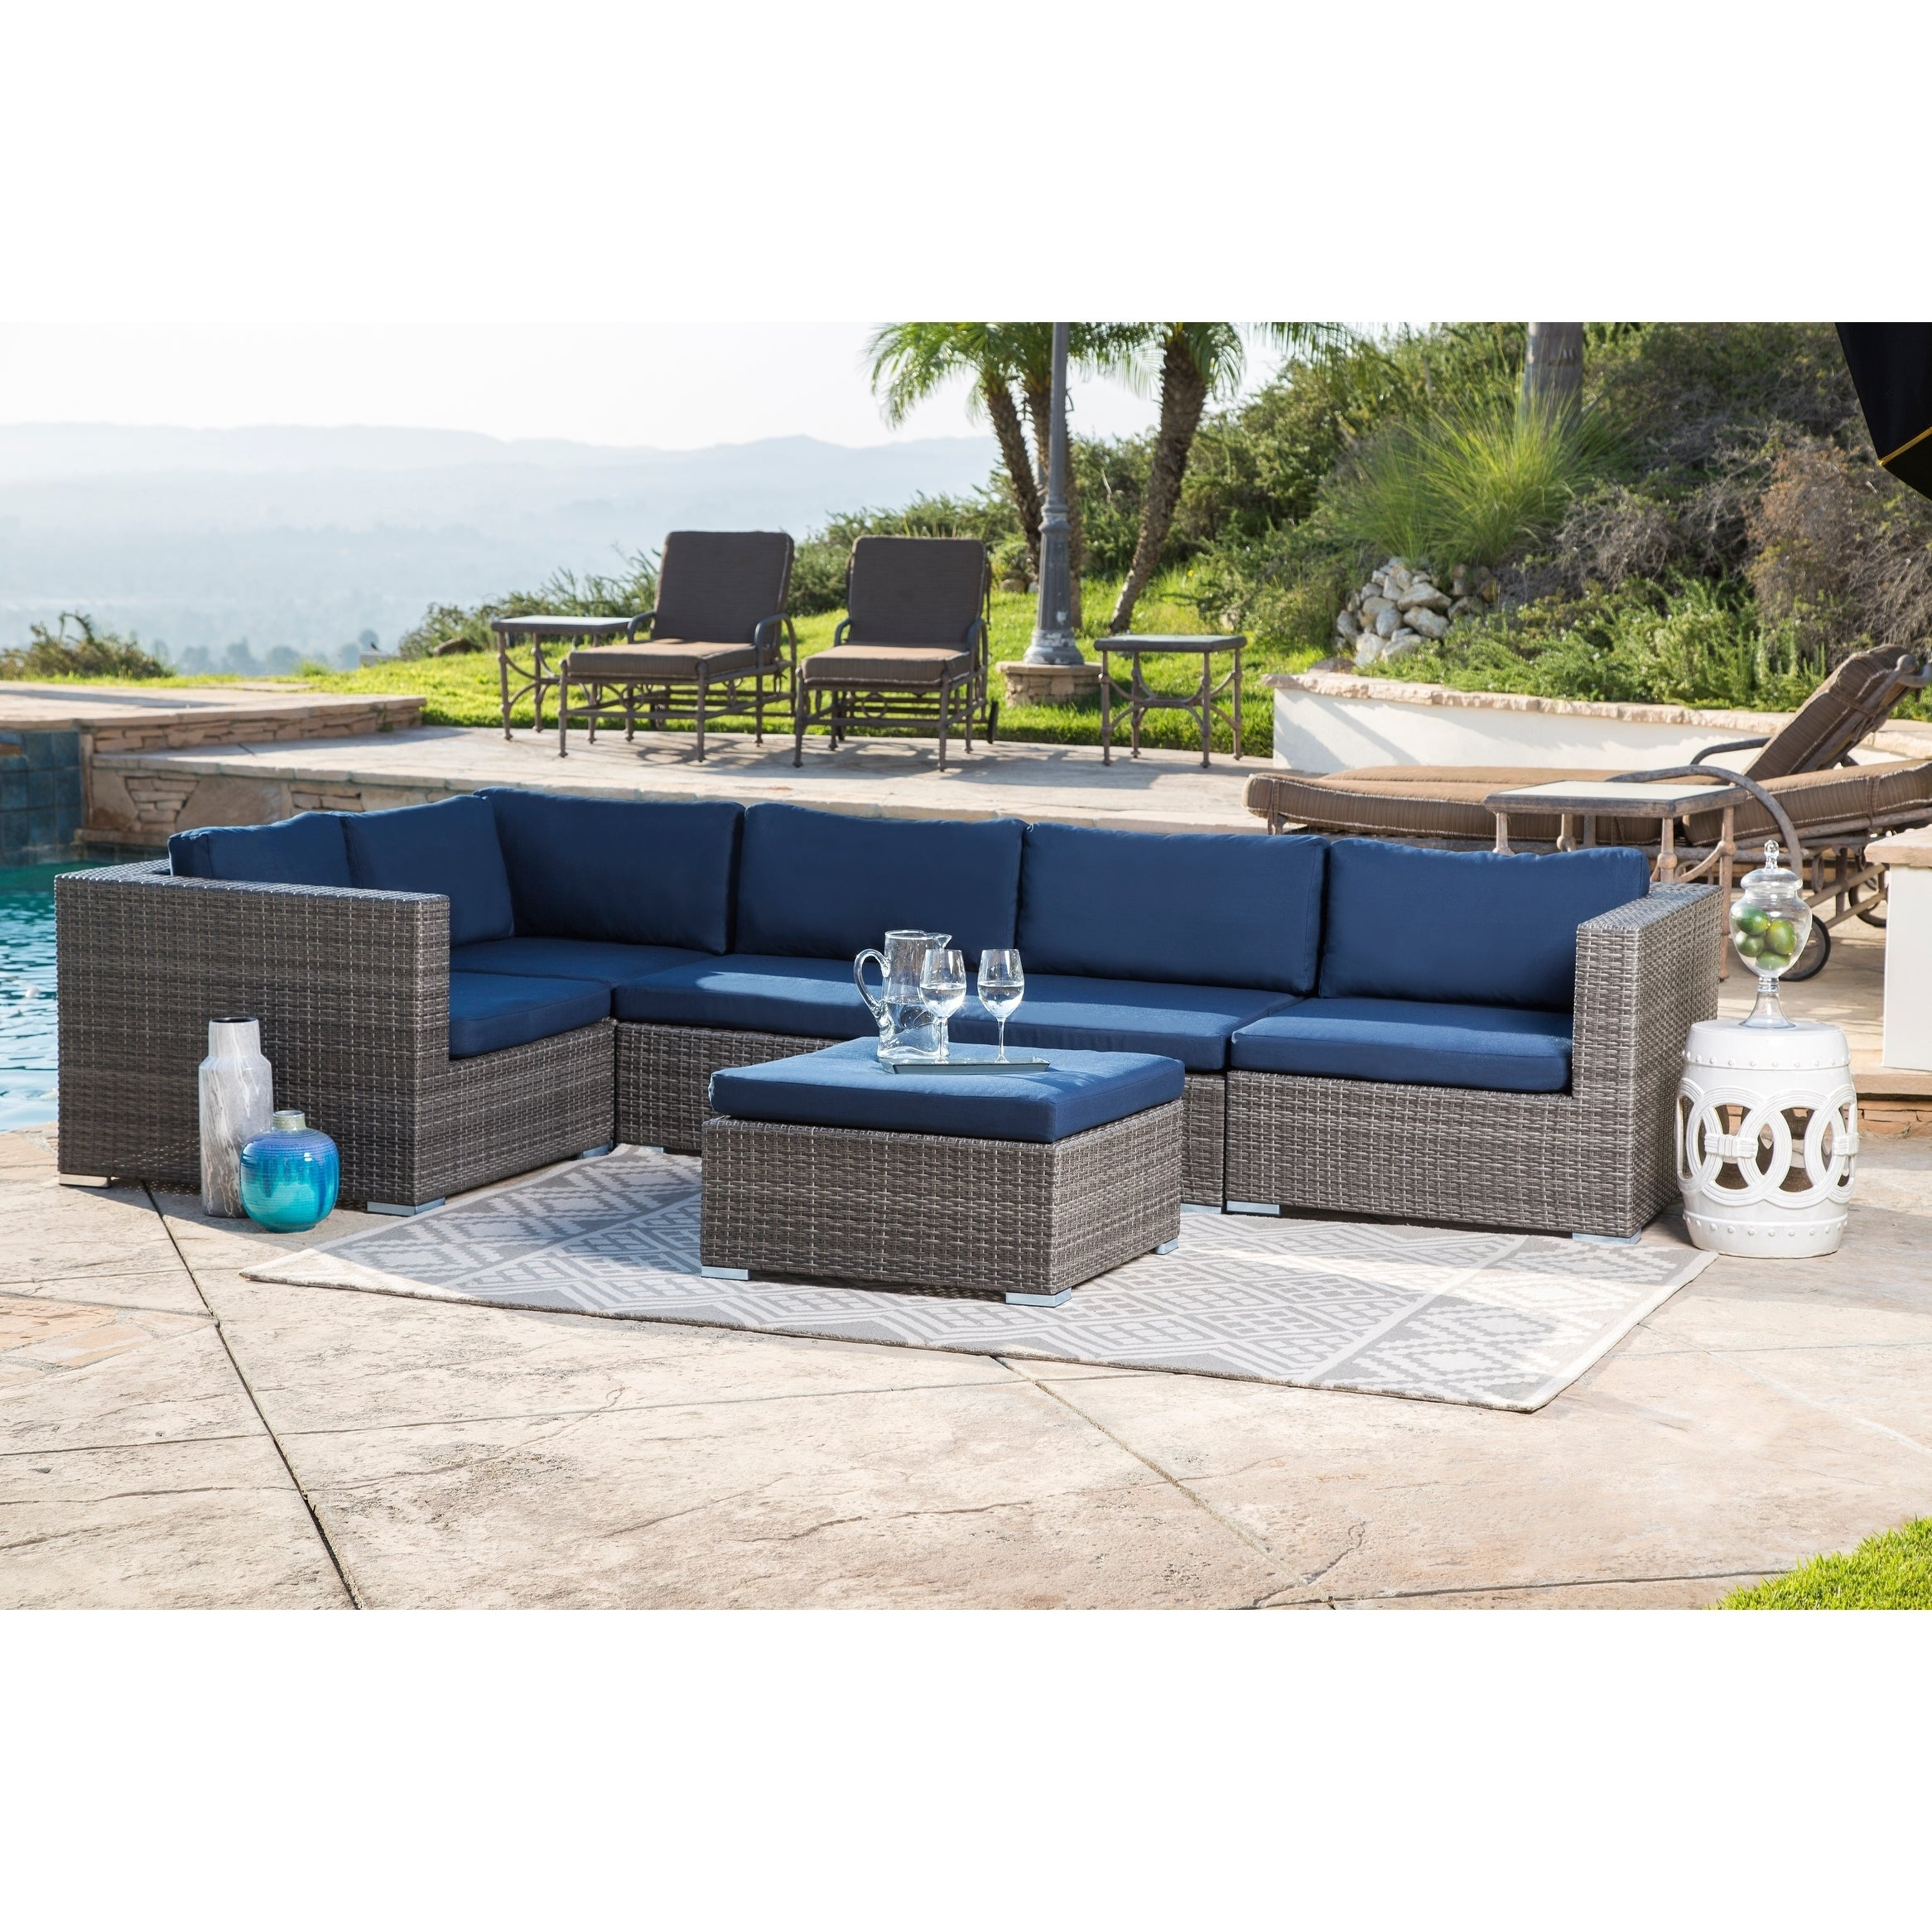 patio df et janus neutralterritory outdoor carousel furniture cie konos luxury